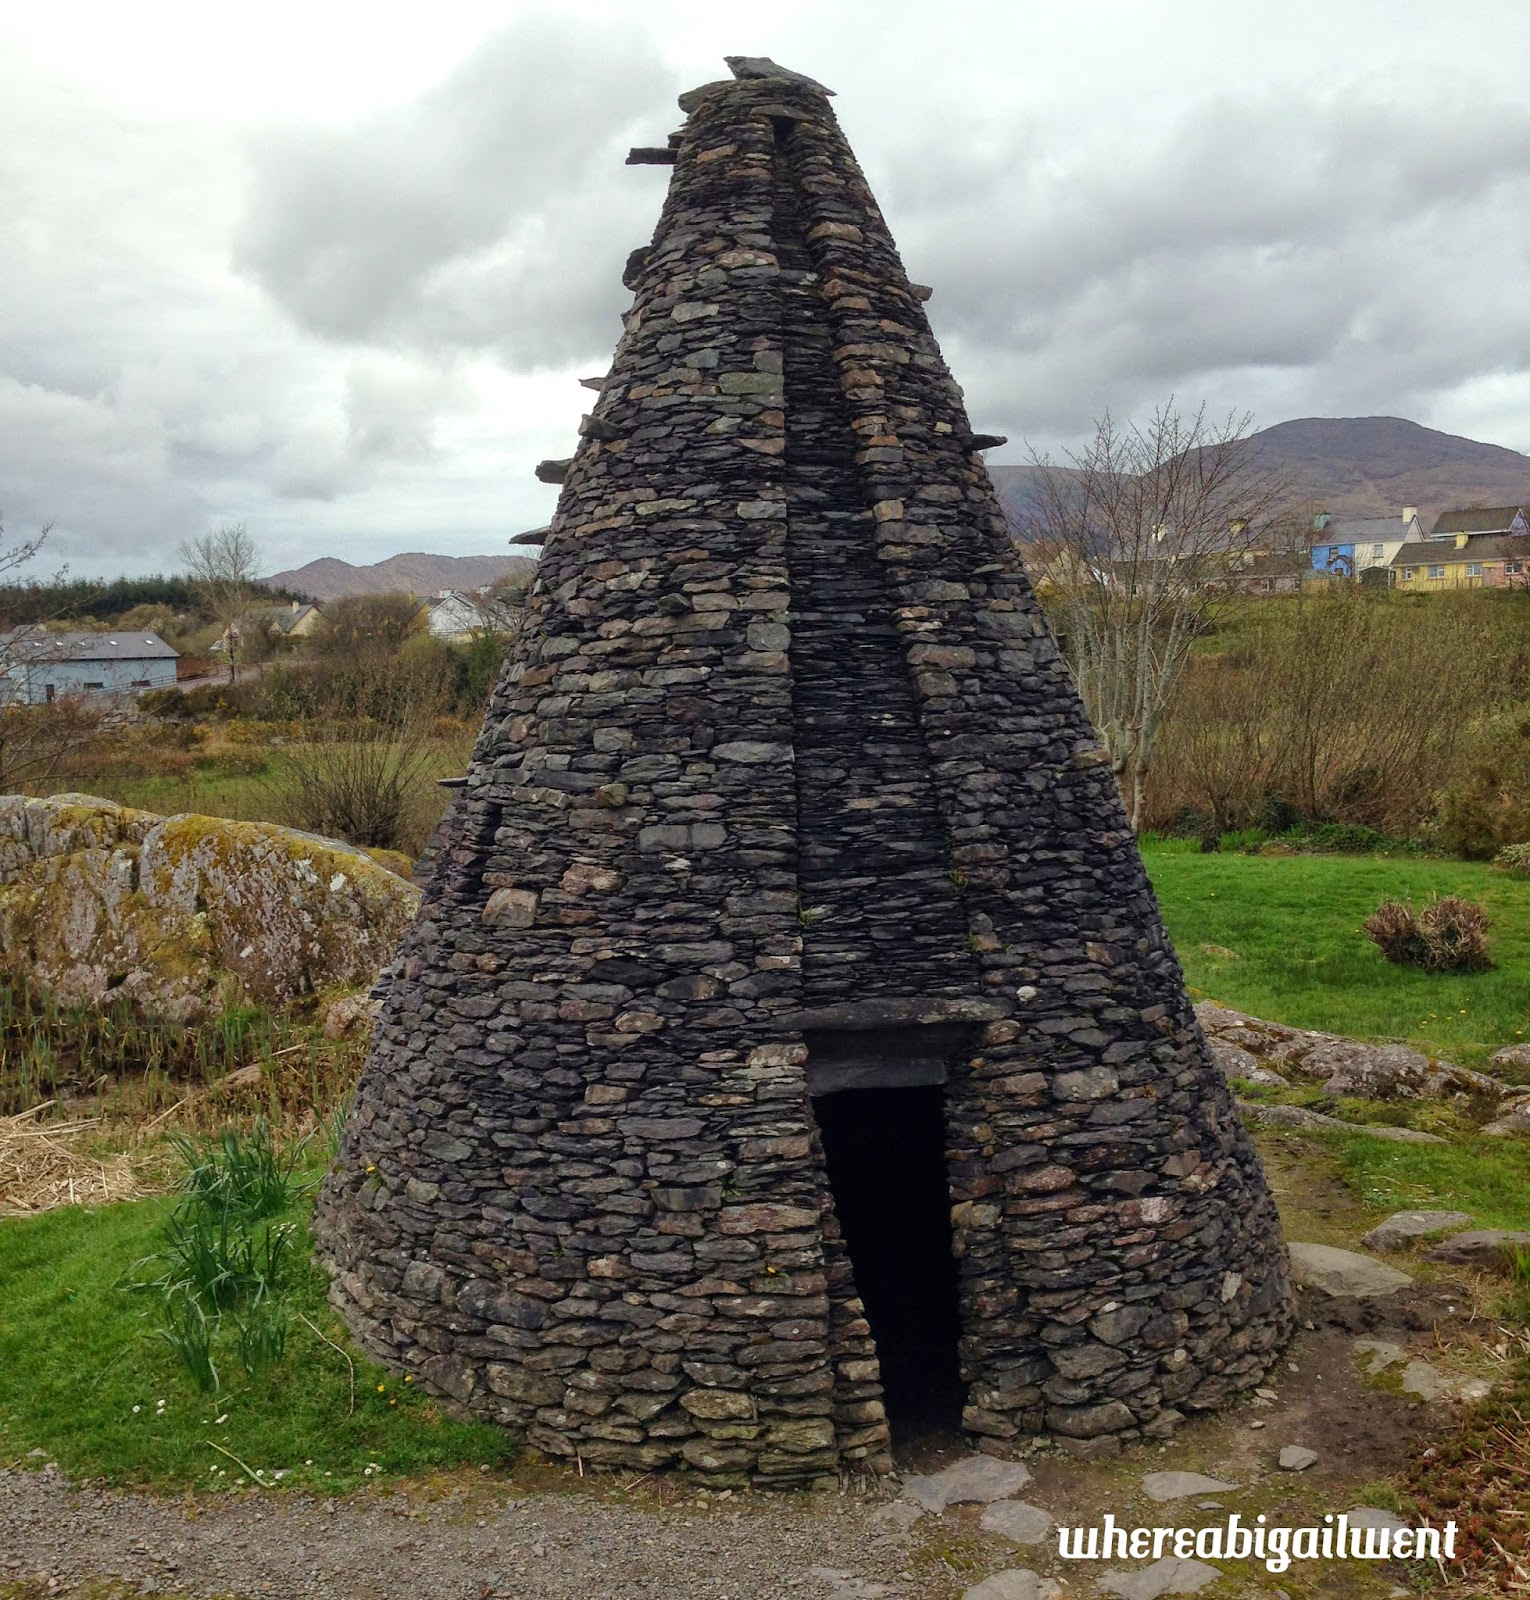 Irish Fairies Built Pyramids